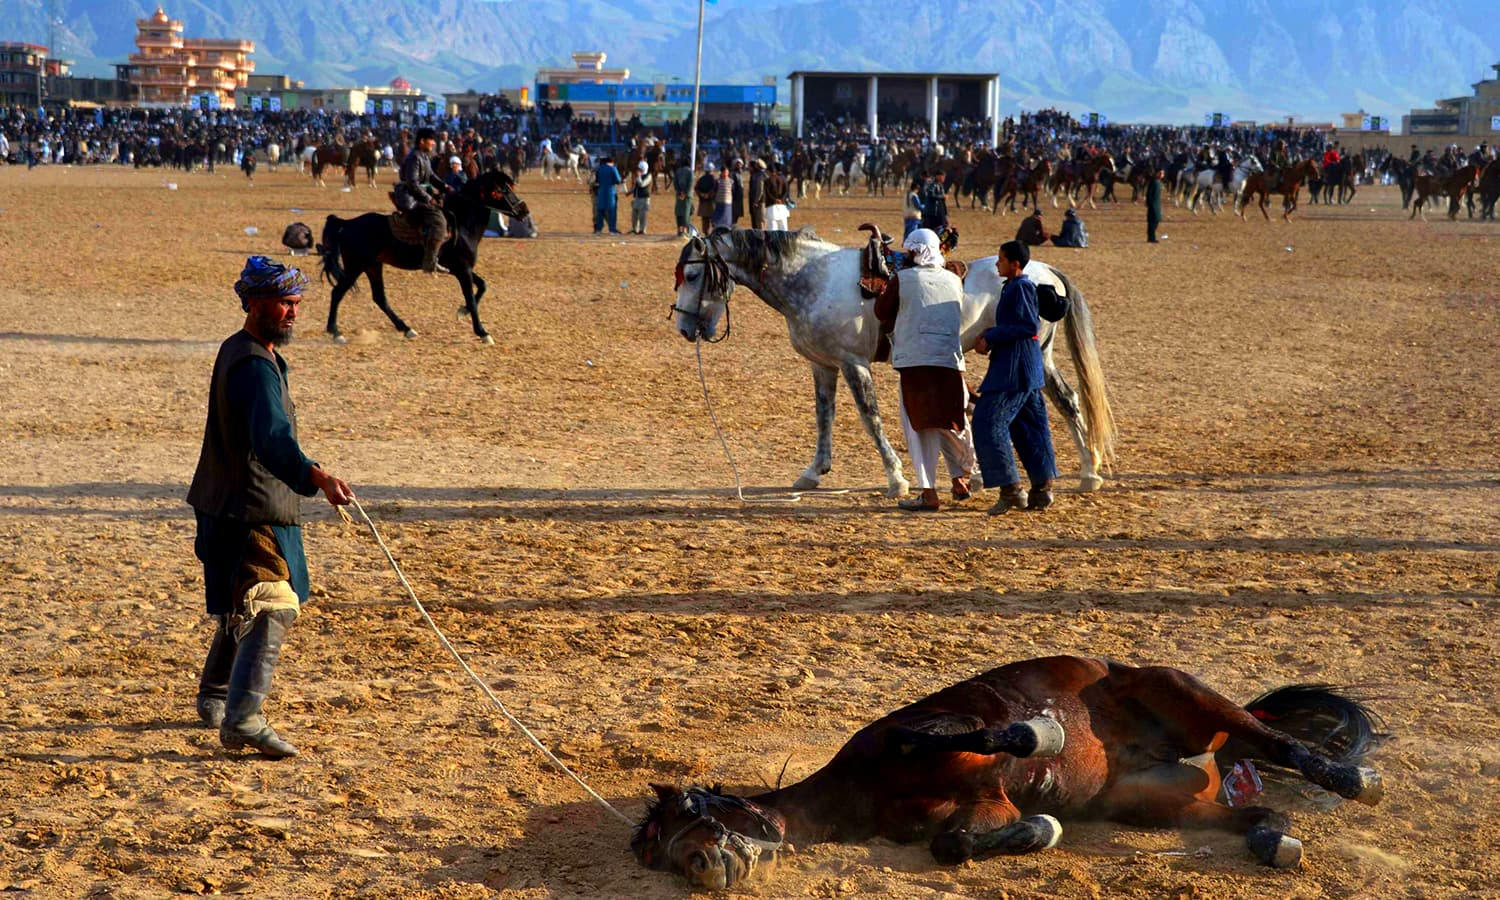 A horse rolls in the dust as others are prepared to take part in a buzkashi match. ─ AFP